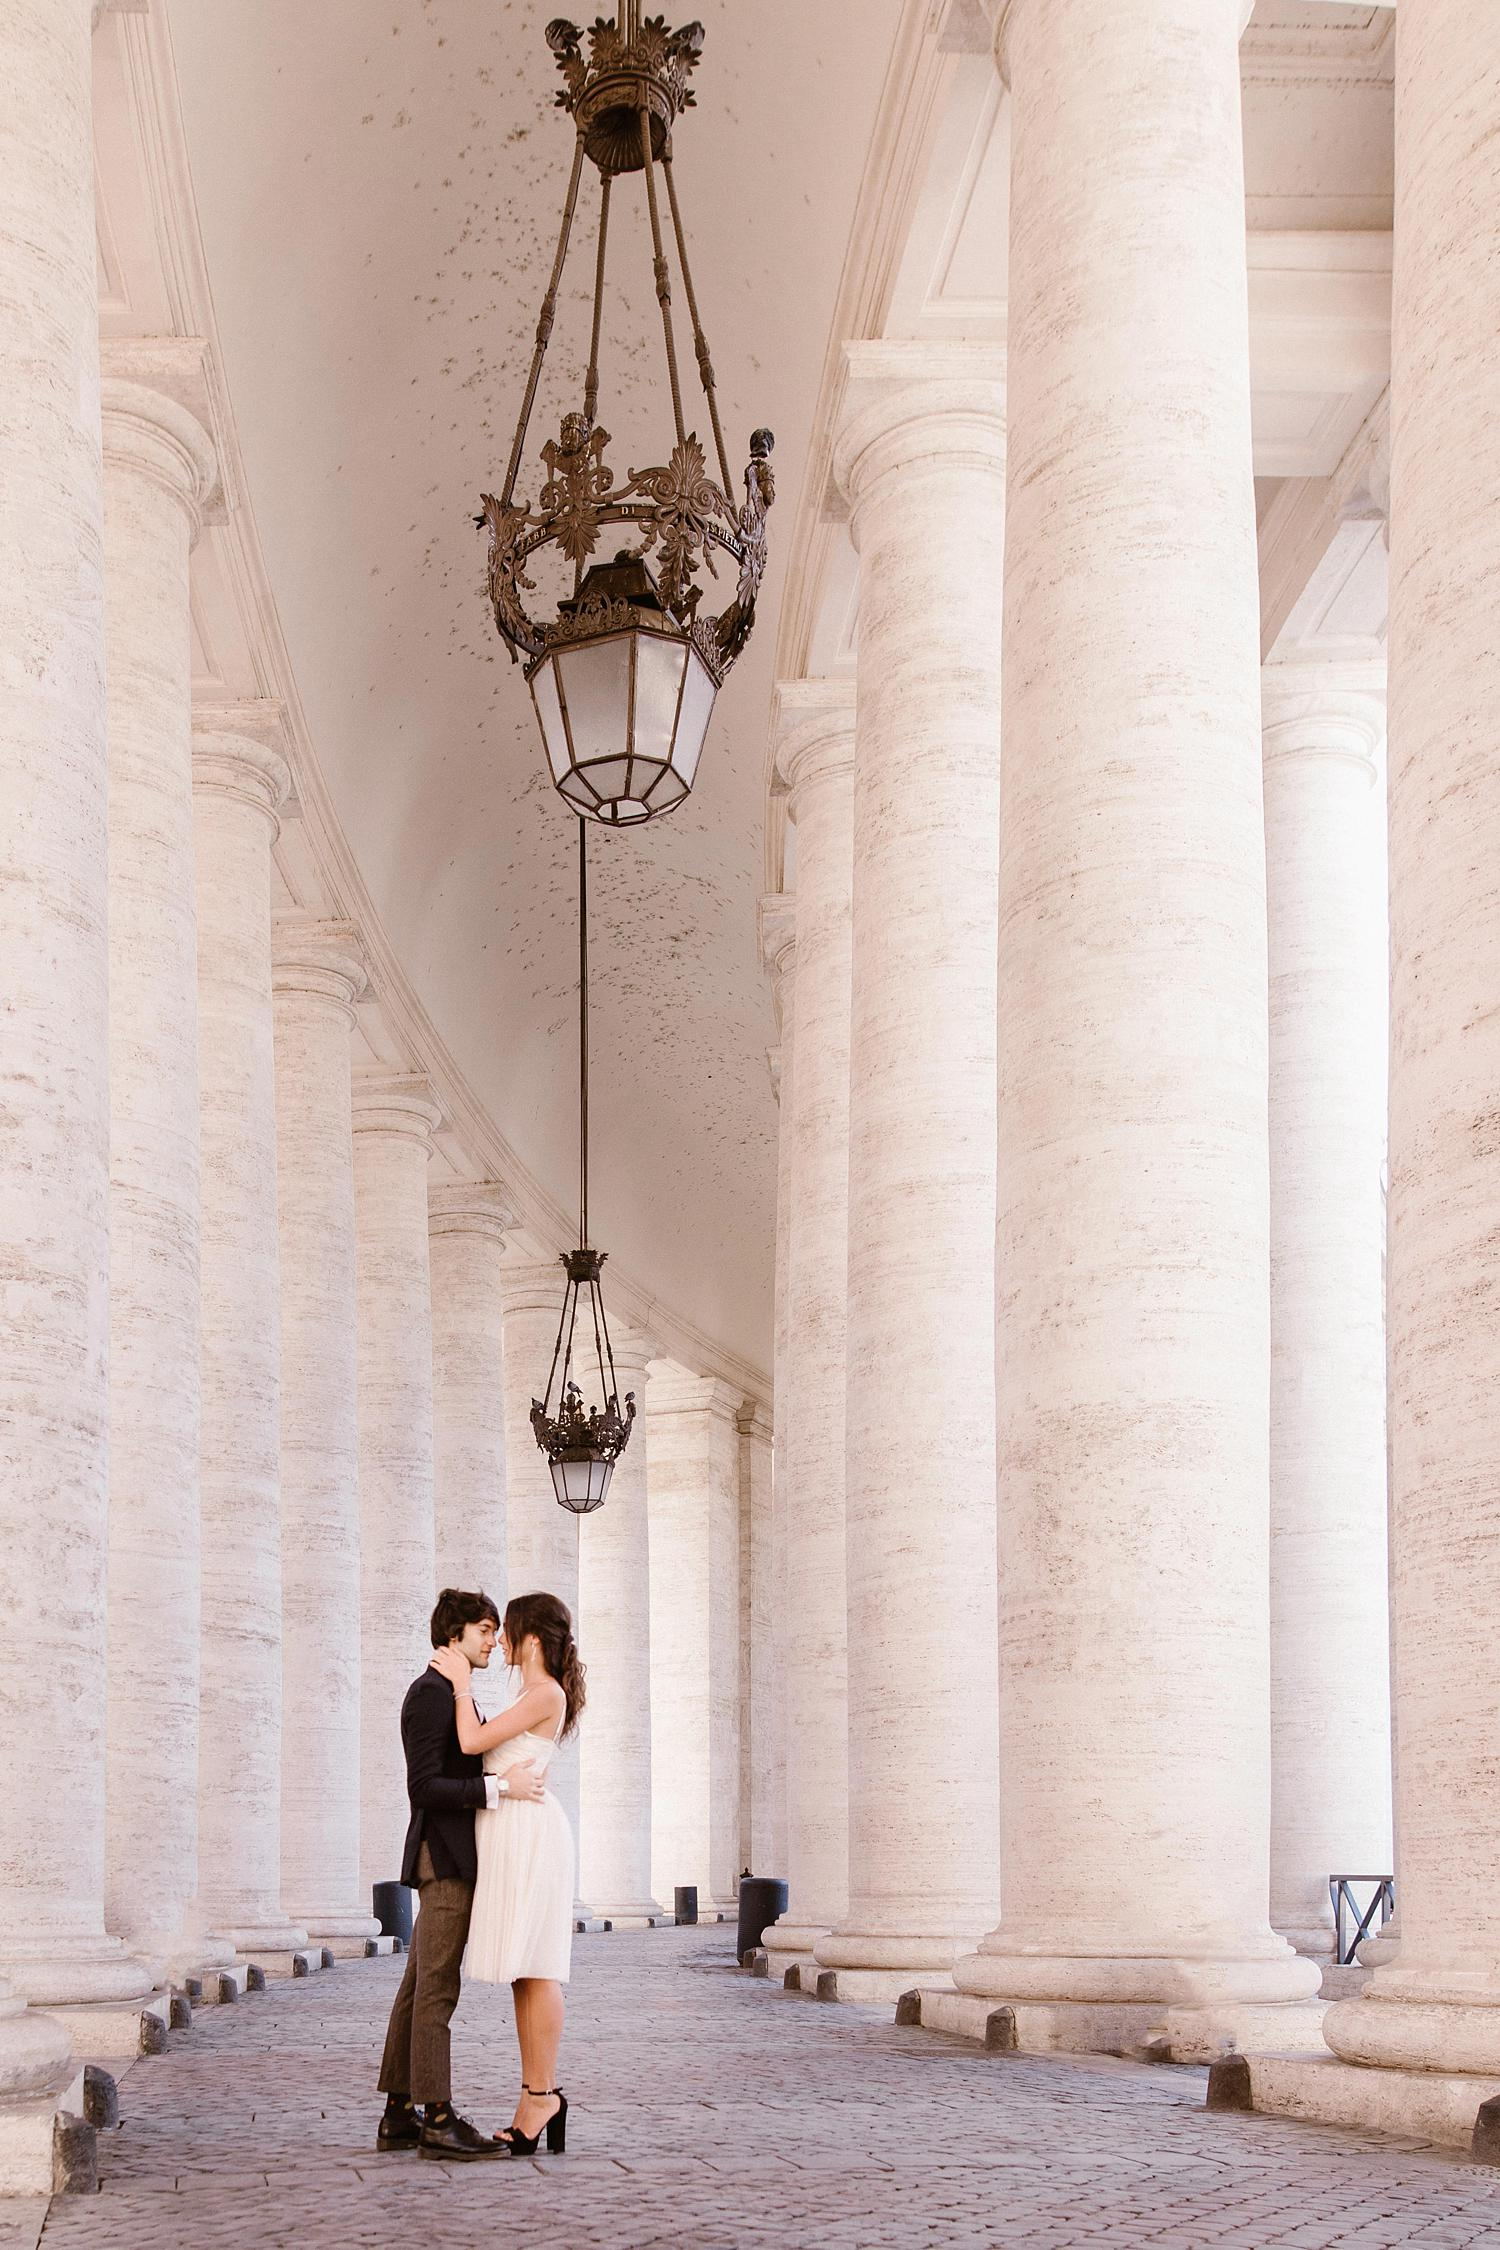 gs weddingphotographer rome 06 - Giulia & Simone - Elegant Couple Shooting in Rome